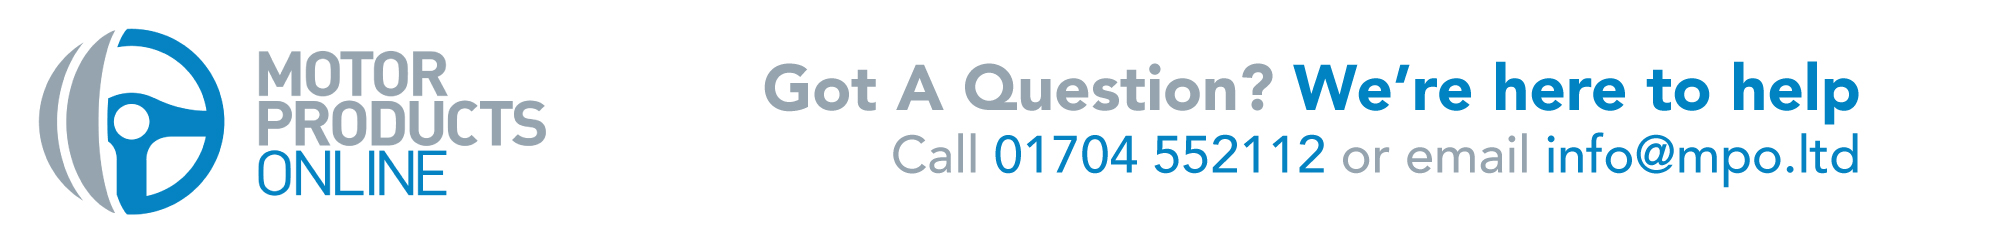 Motor Products Online Contact us heading banner. Got a question? We're here to help, call 01704 552112 or email info@mpo.ltd